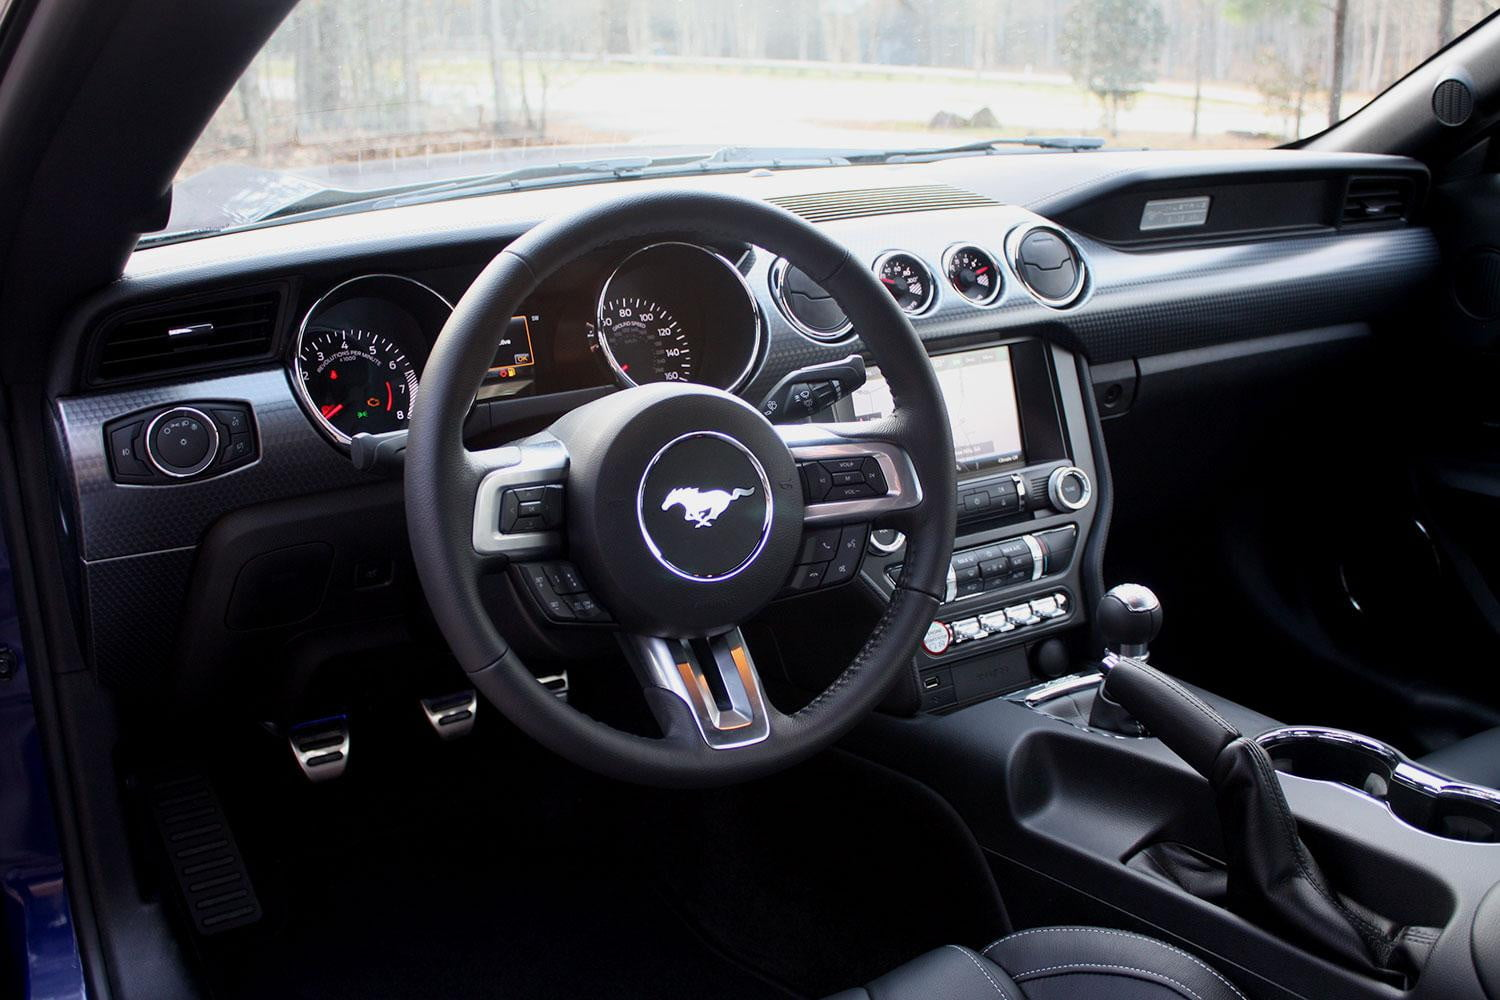 2015 Ford Mustang GT Steering Wheel Full Idea